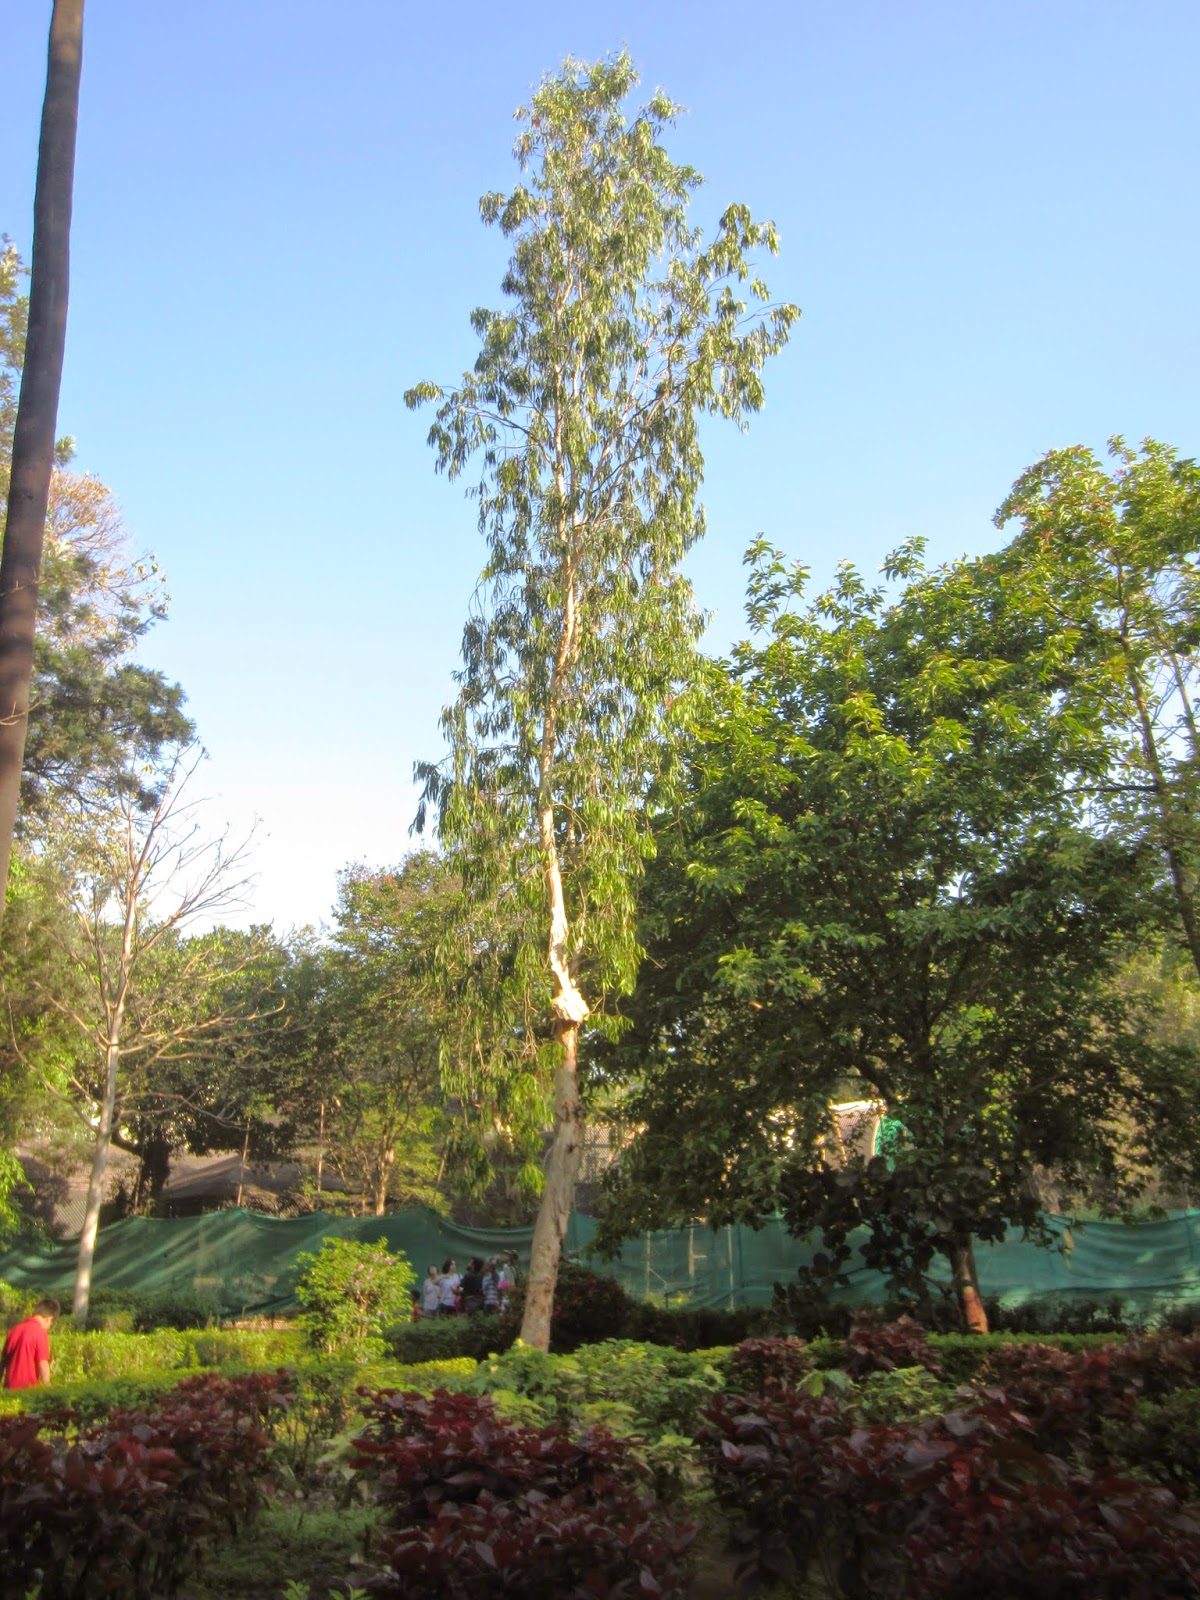 Cajeput Tree: My World: Rani Bagh Botanical Garden Tree Trail